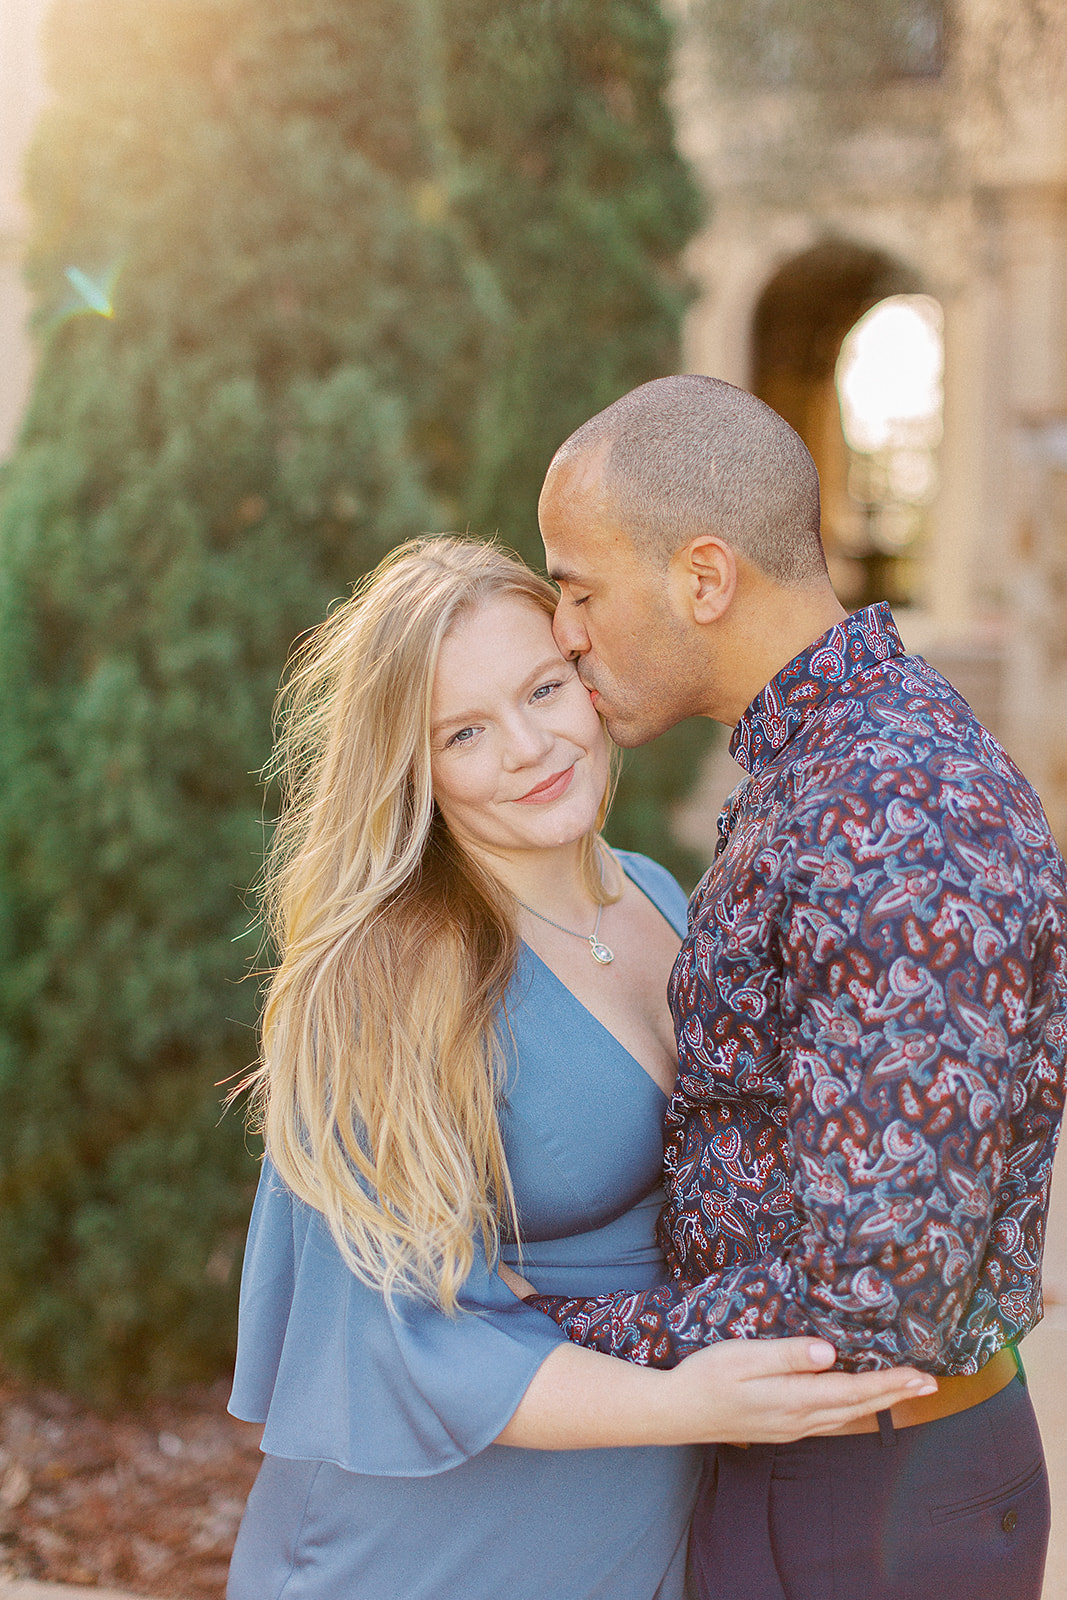 Rachel_+_Manny_Bello_Engagement_Session_Bella_Collina_Photographer_Casie_Marie_Photography-67